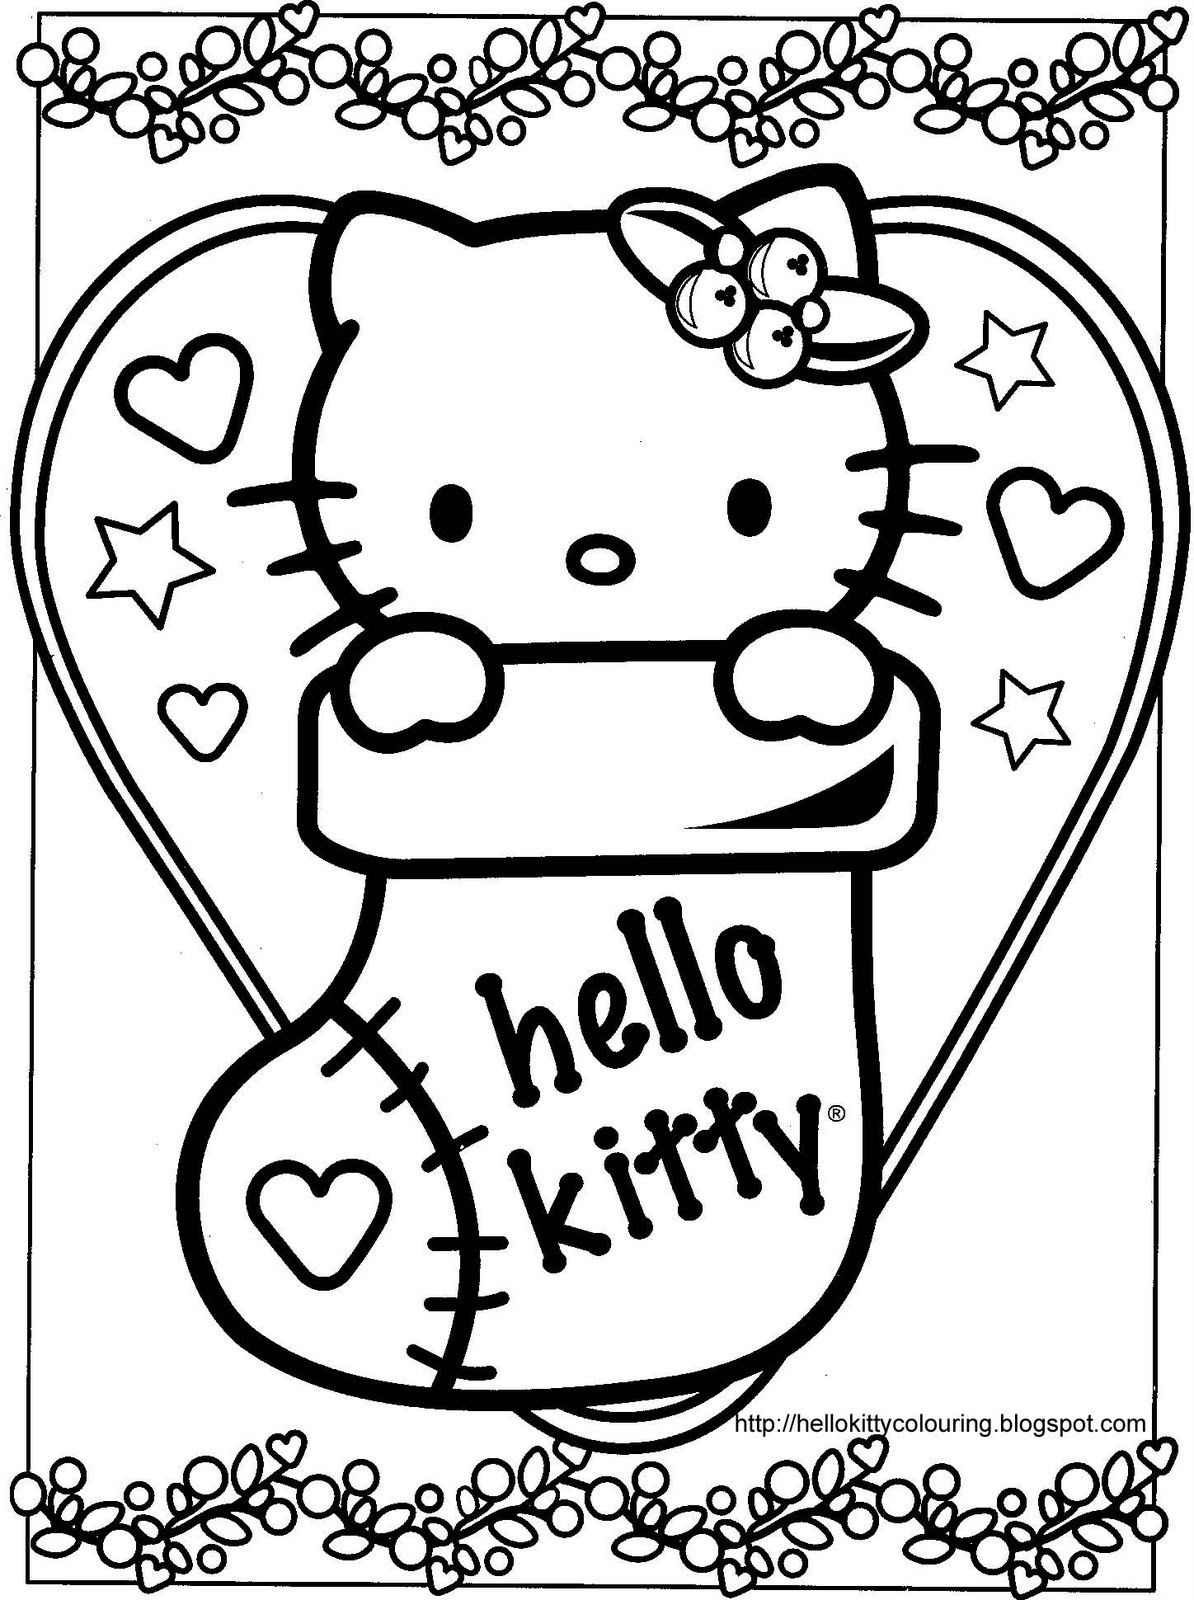 Coloring Pages Hello Kitty Coloring Pages Christmas 1000 images about coloring pages on pinterest lady and the tramp books